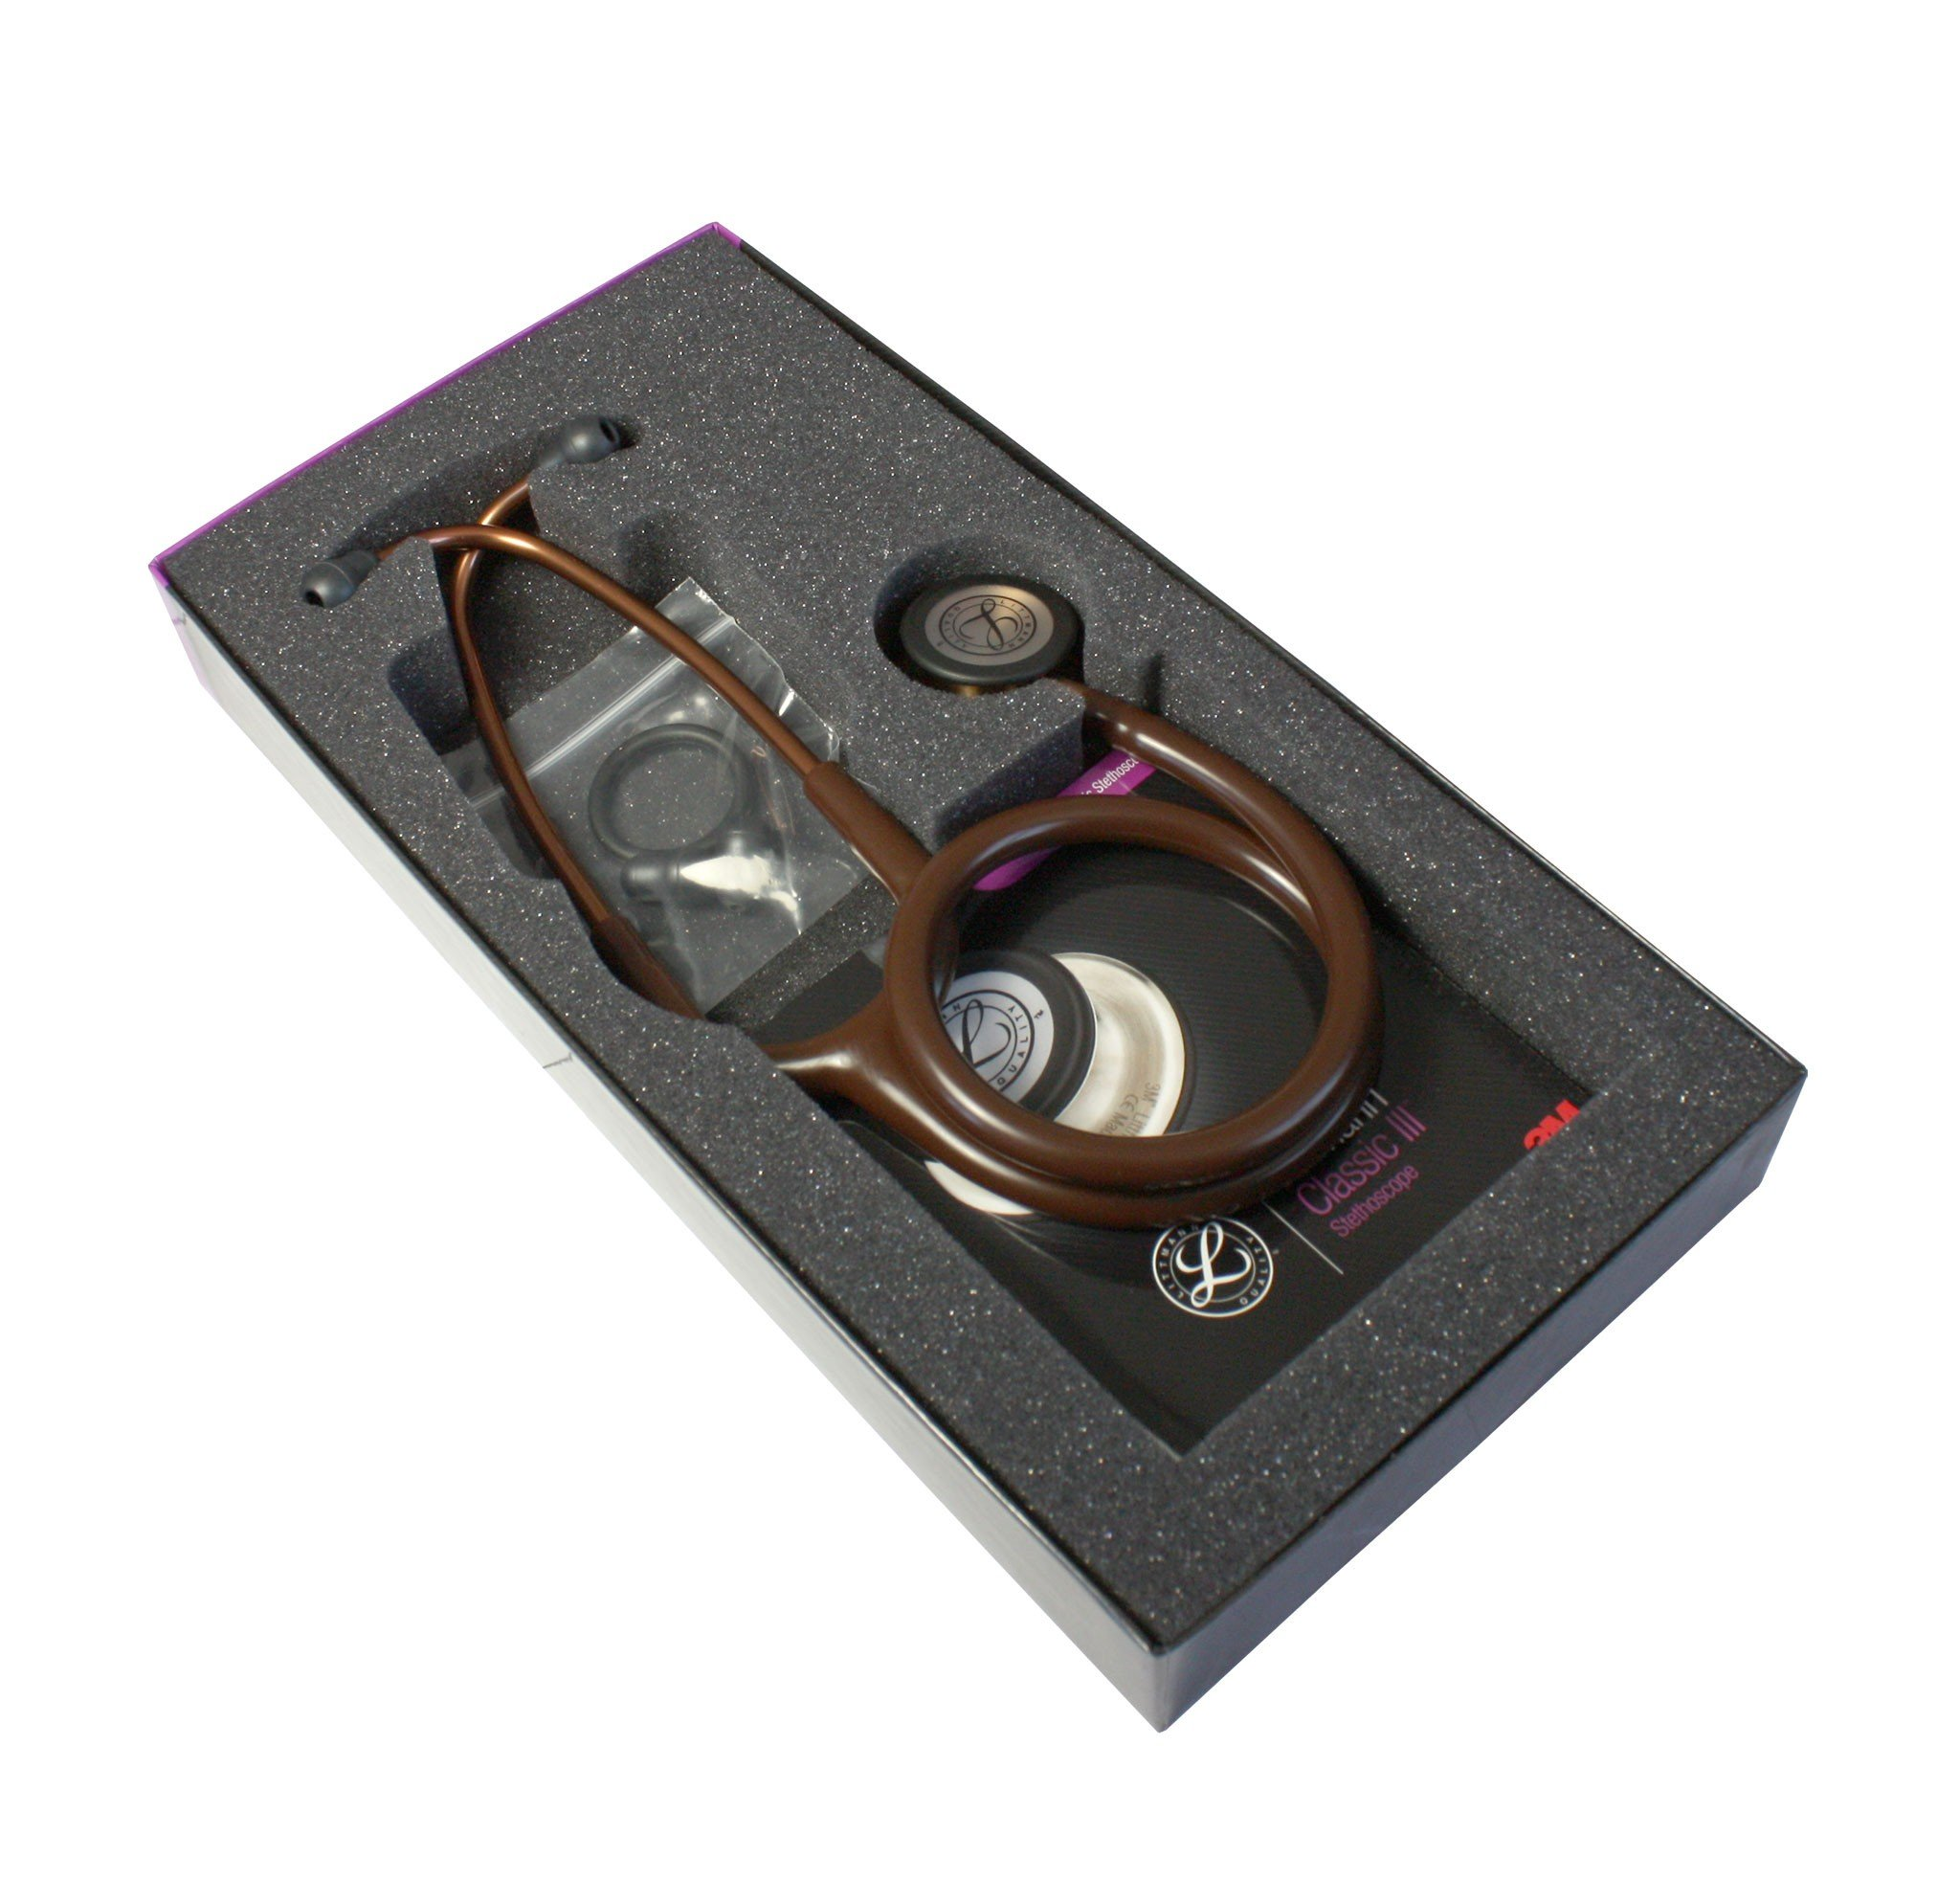 3m littmann classic iii stethoscope chocolate copper 5809 for Classic 3